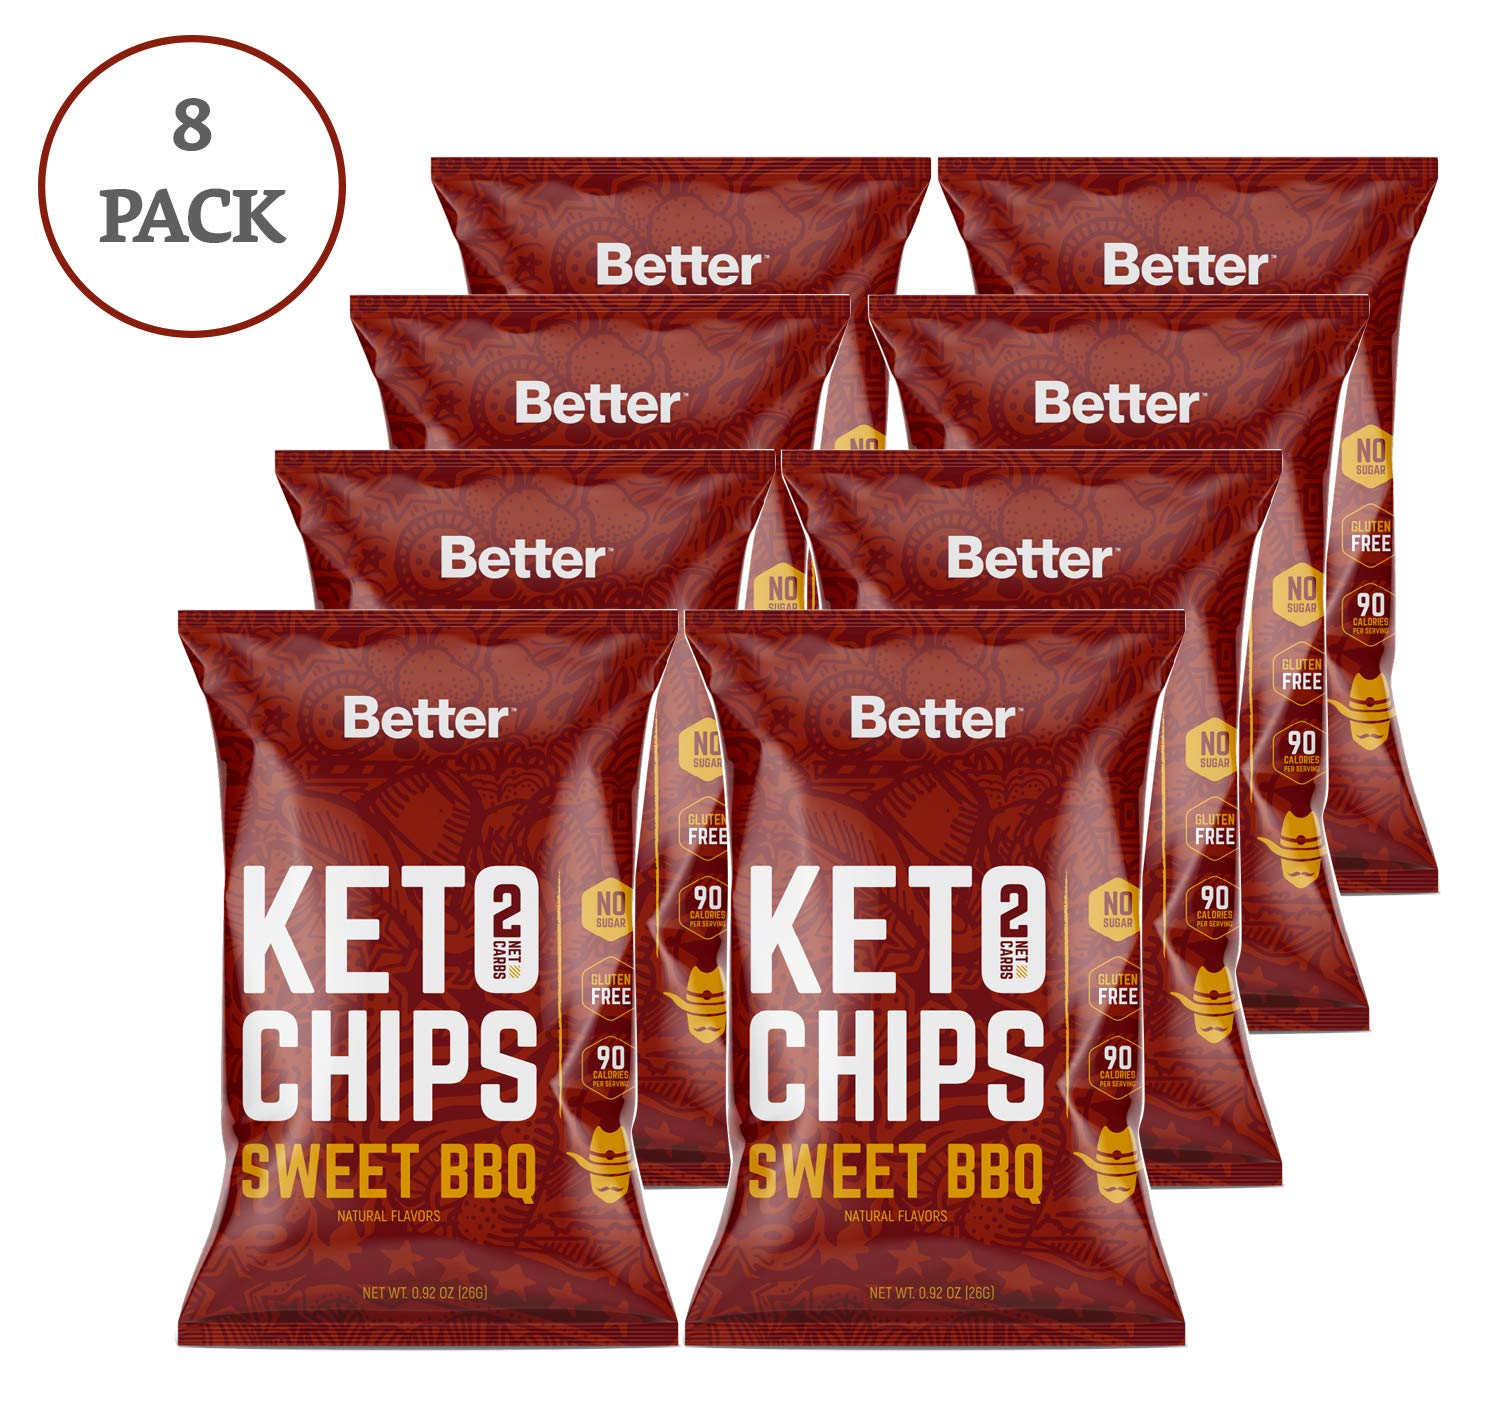 Keto Chips Sweet BBQ, Low Carb Crispy Chips, Healthy Diet Food Crunchy Delicious Gluten & Wheat Free by Real Ketones